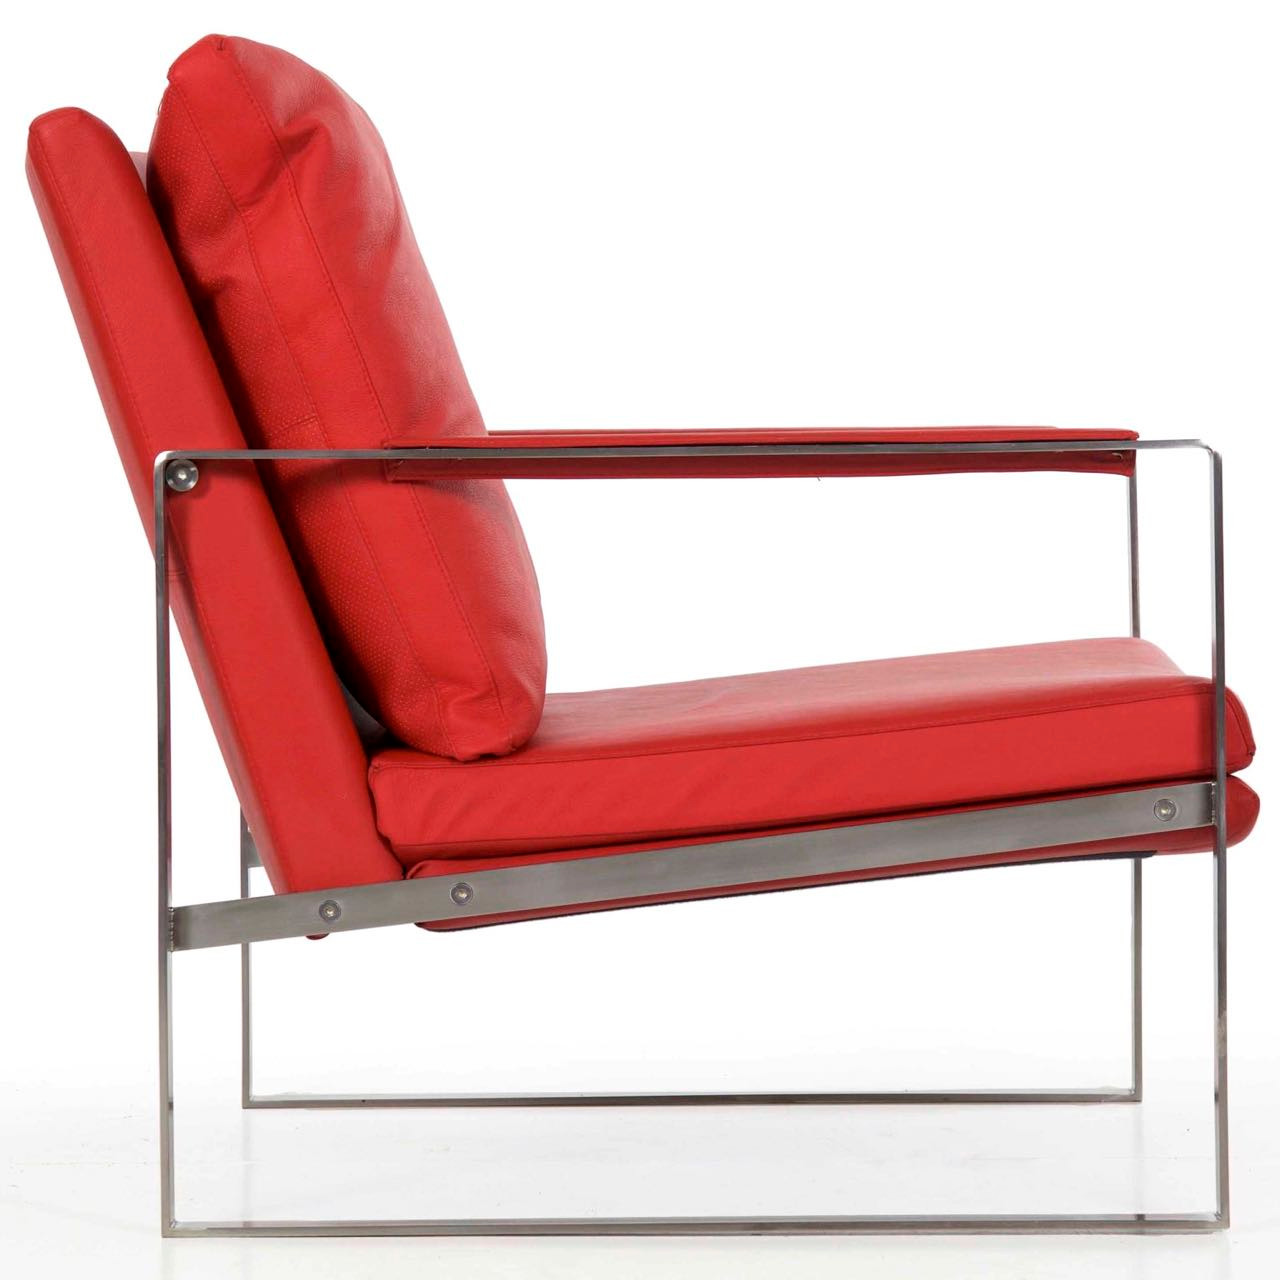 steel lounge chair folding racks fine quality brushed cube 20th century zoom